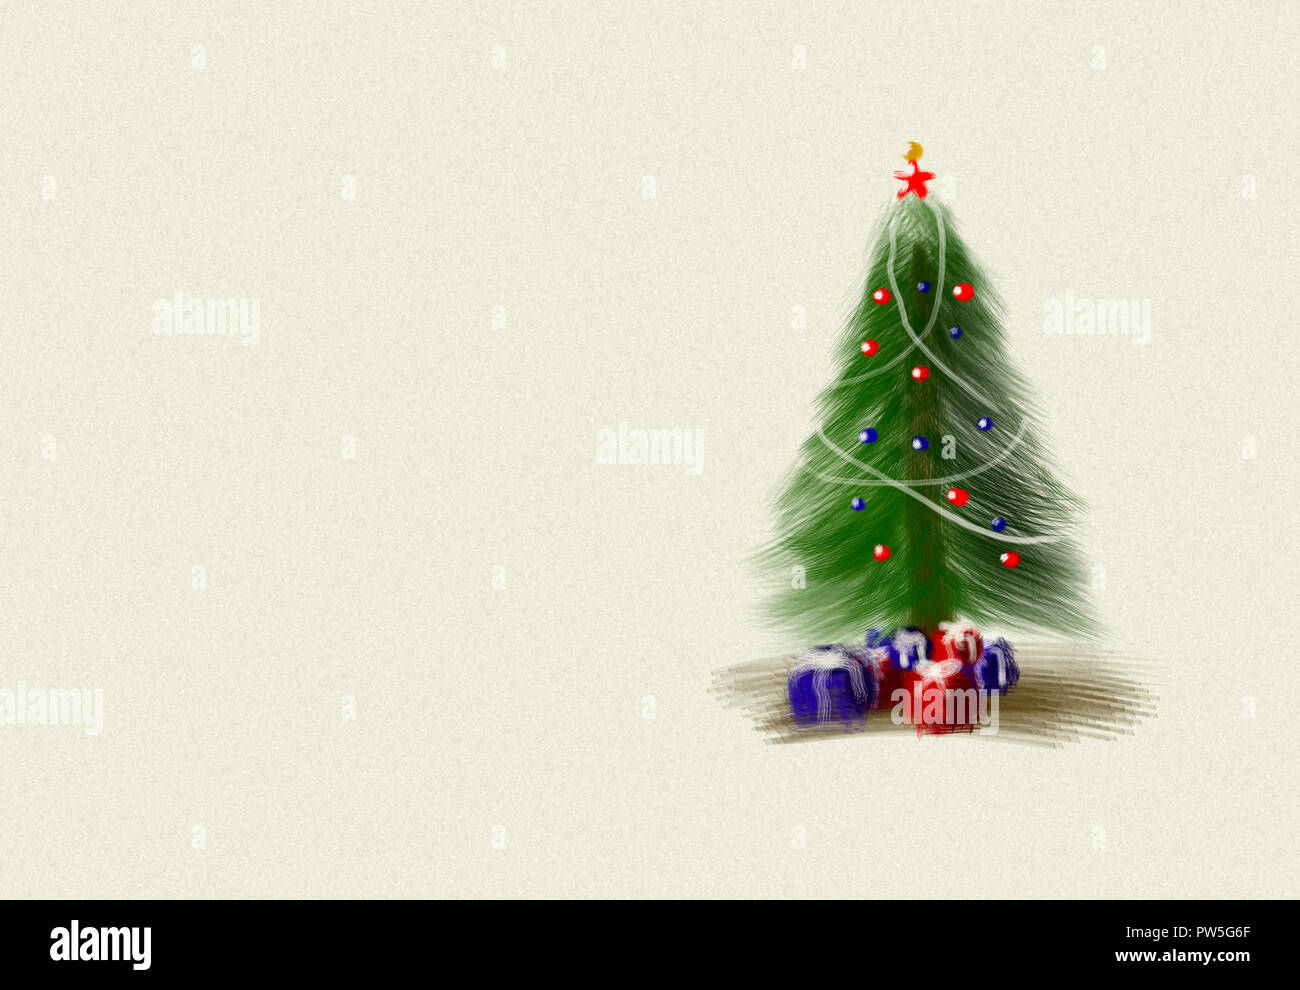 Christmas tree drawing with presents and ornamentals. - Stock Image